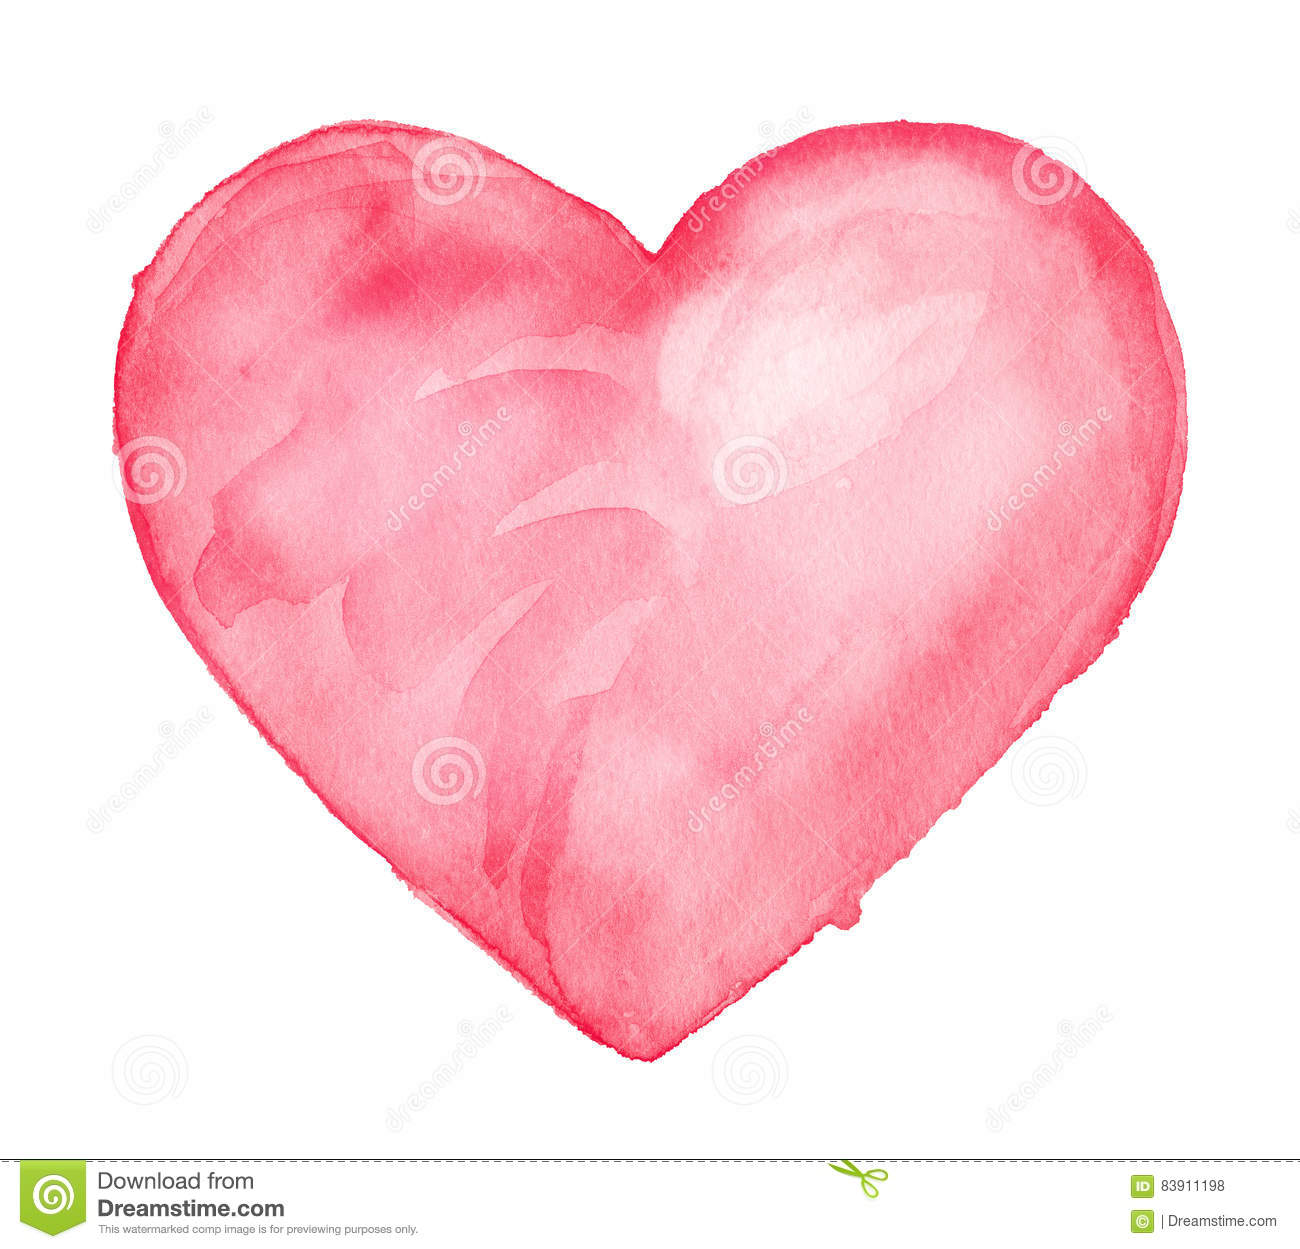 Heart cute clipart